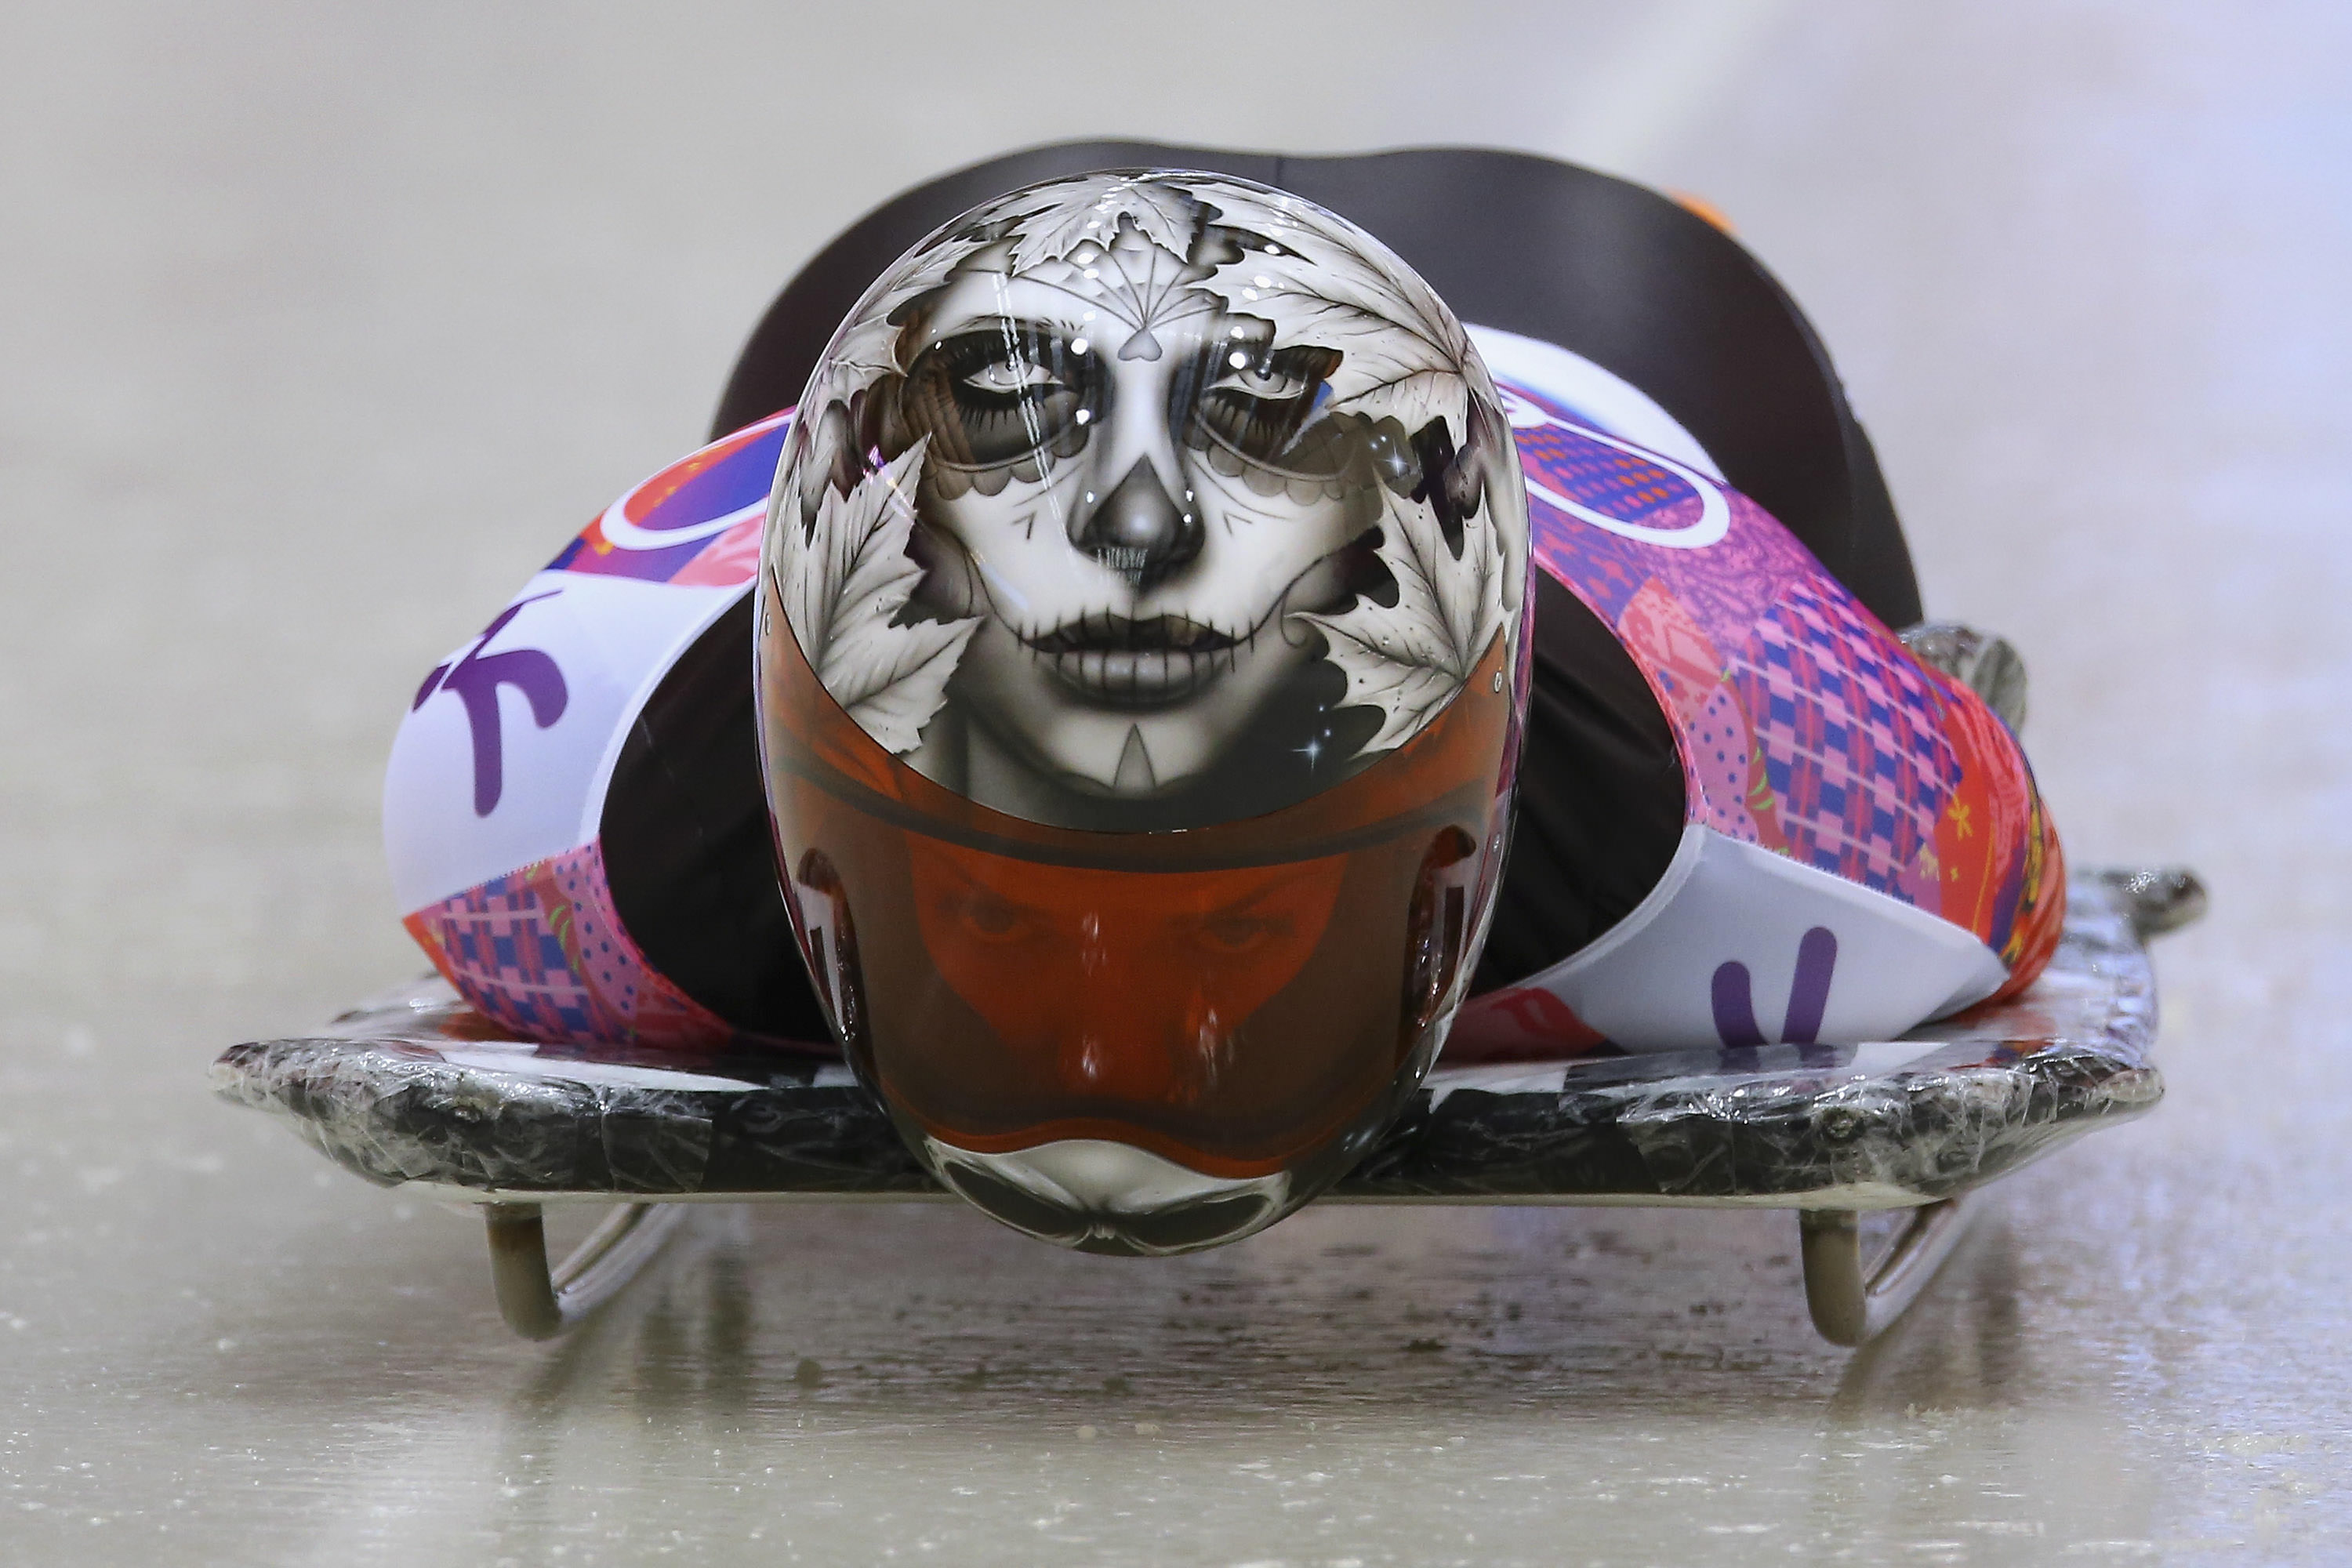 Skeleton - Winter Olympics Day 6